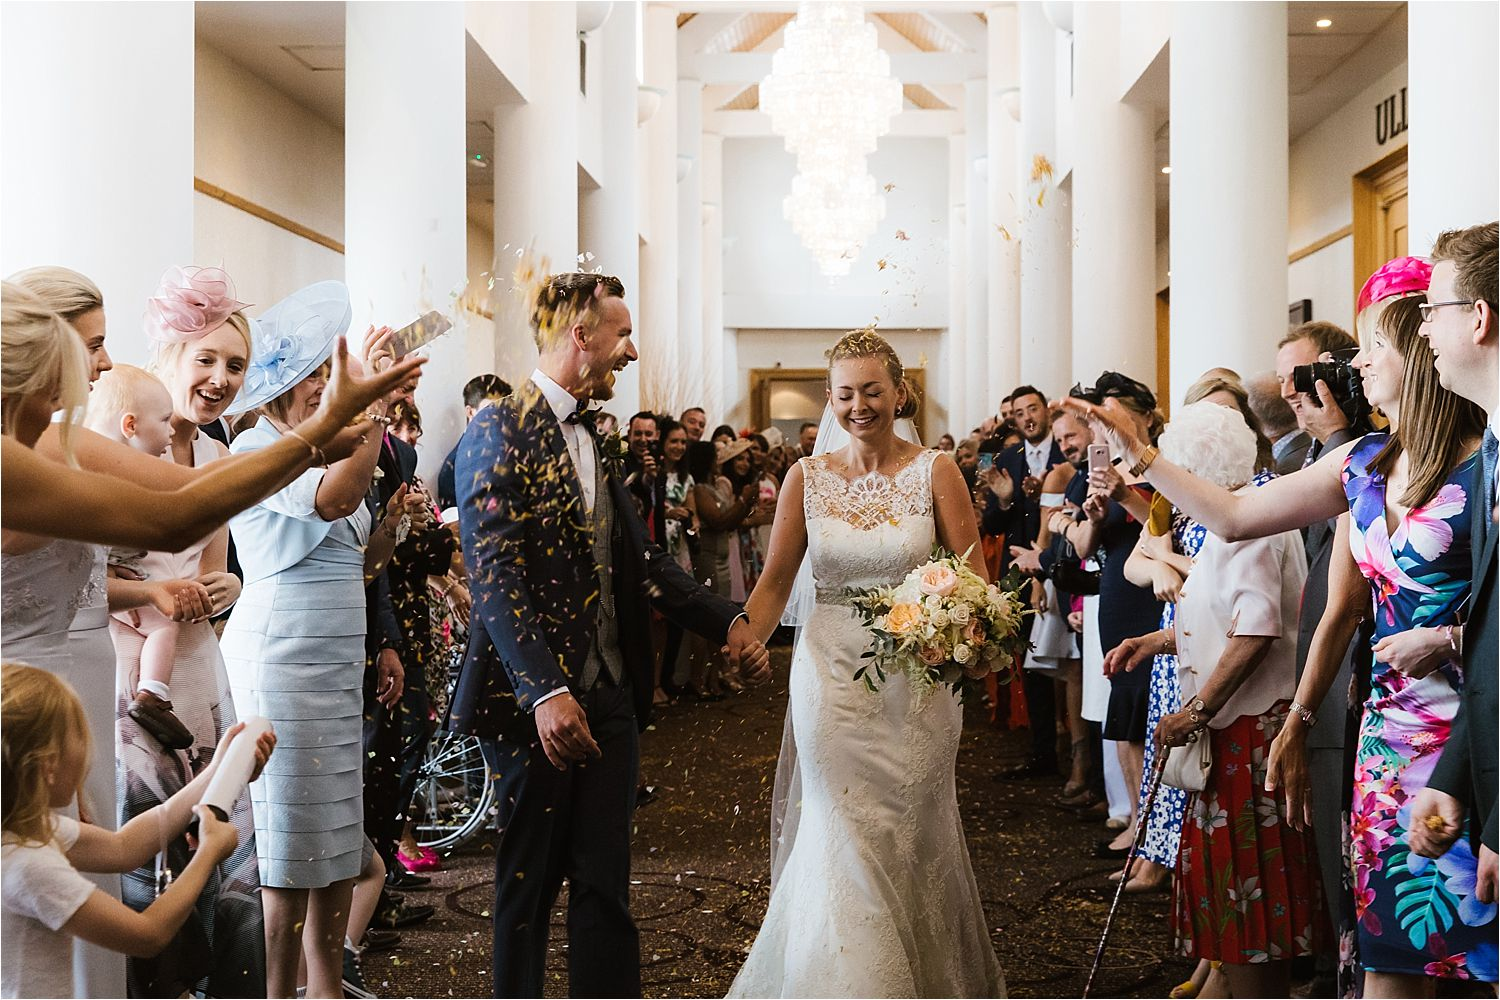 Confetti shower for bride and groom. Bride's dress Augusta Jones at Mears Ghyll